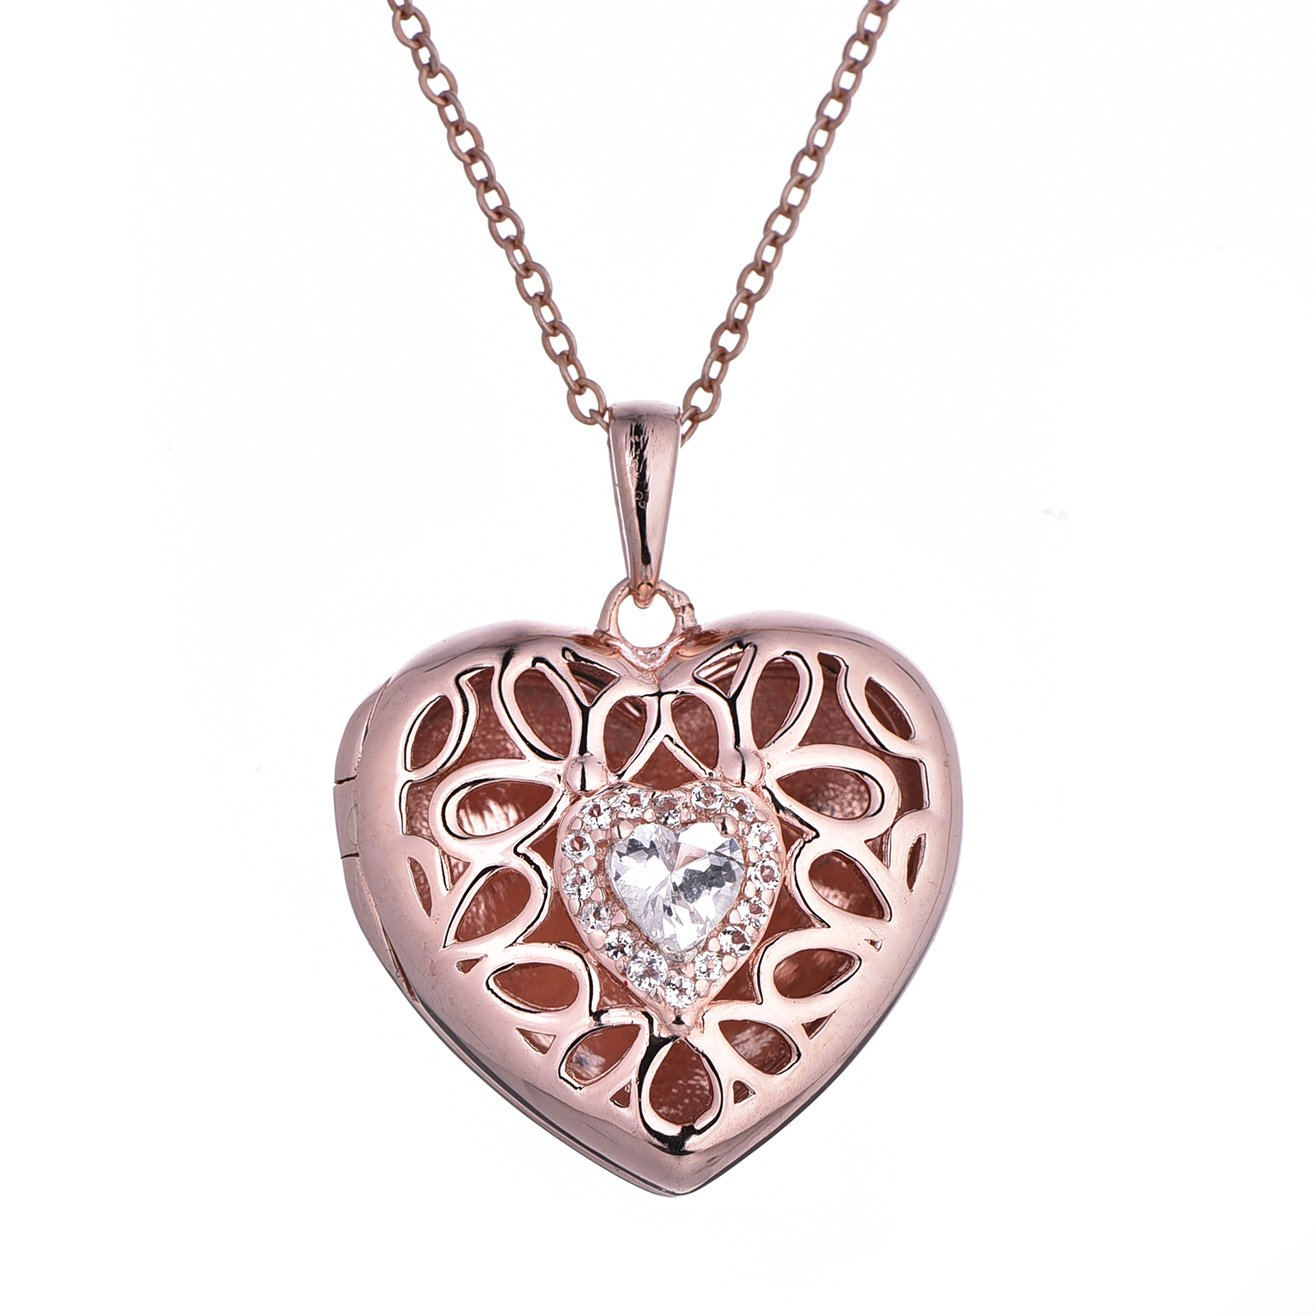 With You Lockets Custom Photo Locket Necklace-Heart Pendant-Rose Gold-Topaz-18inch chain-The Katharine